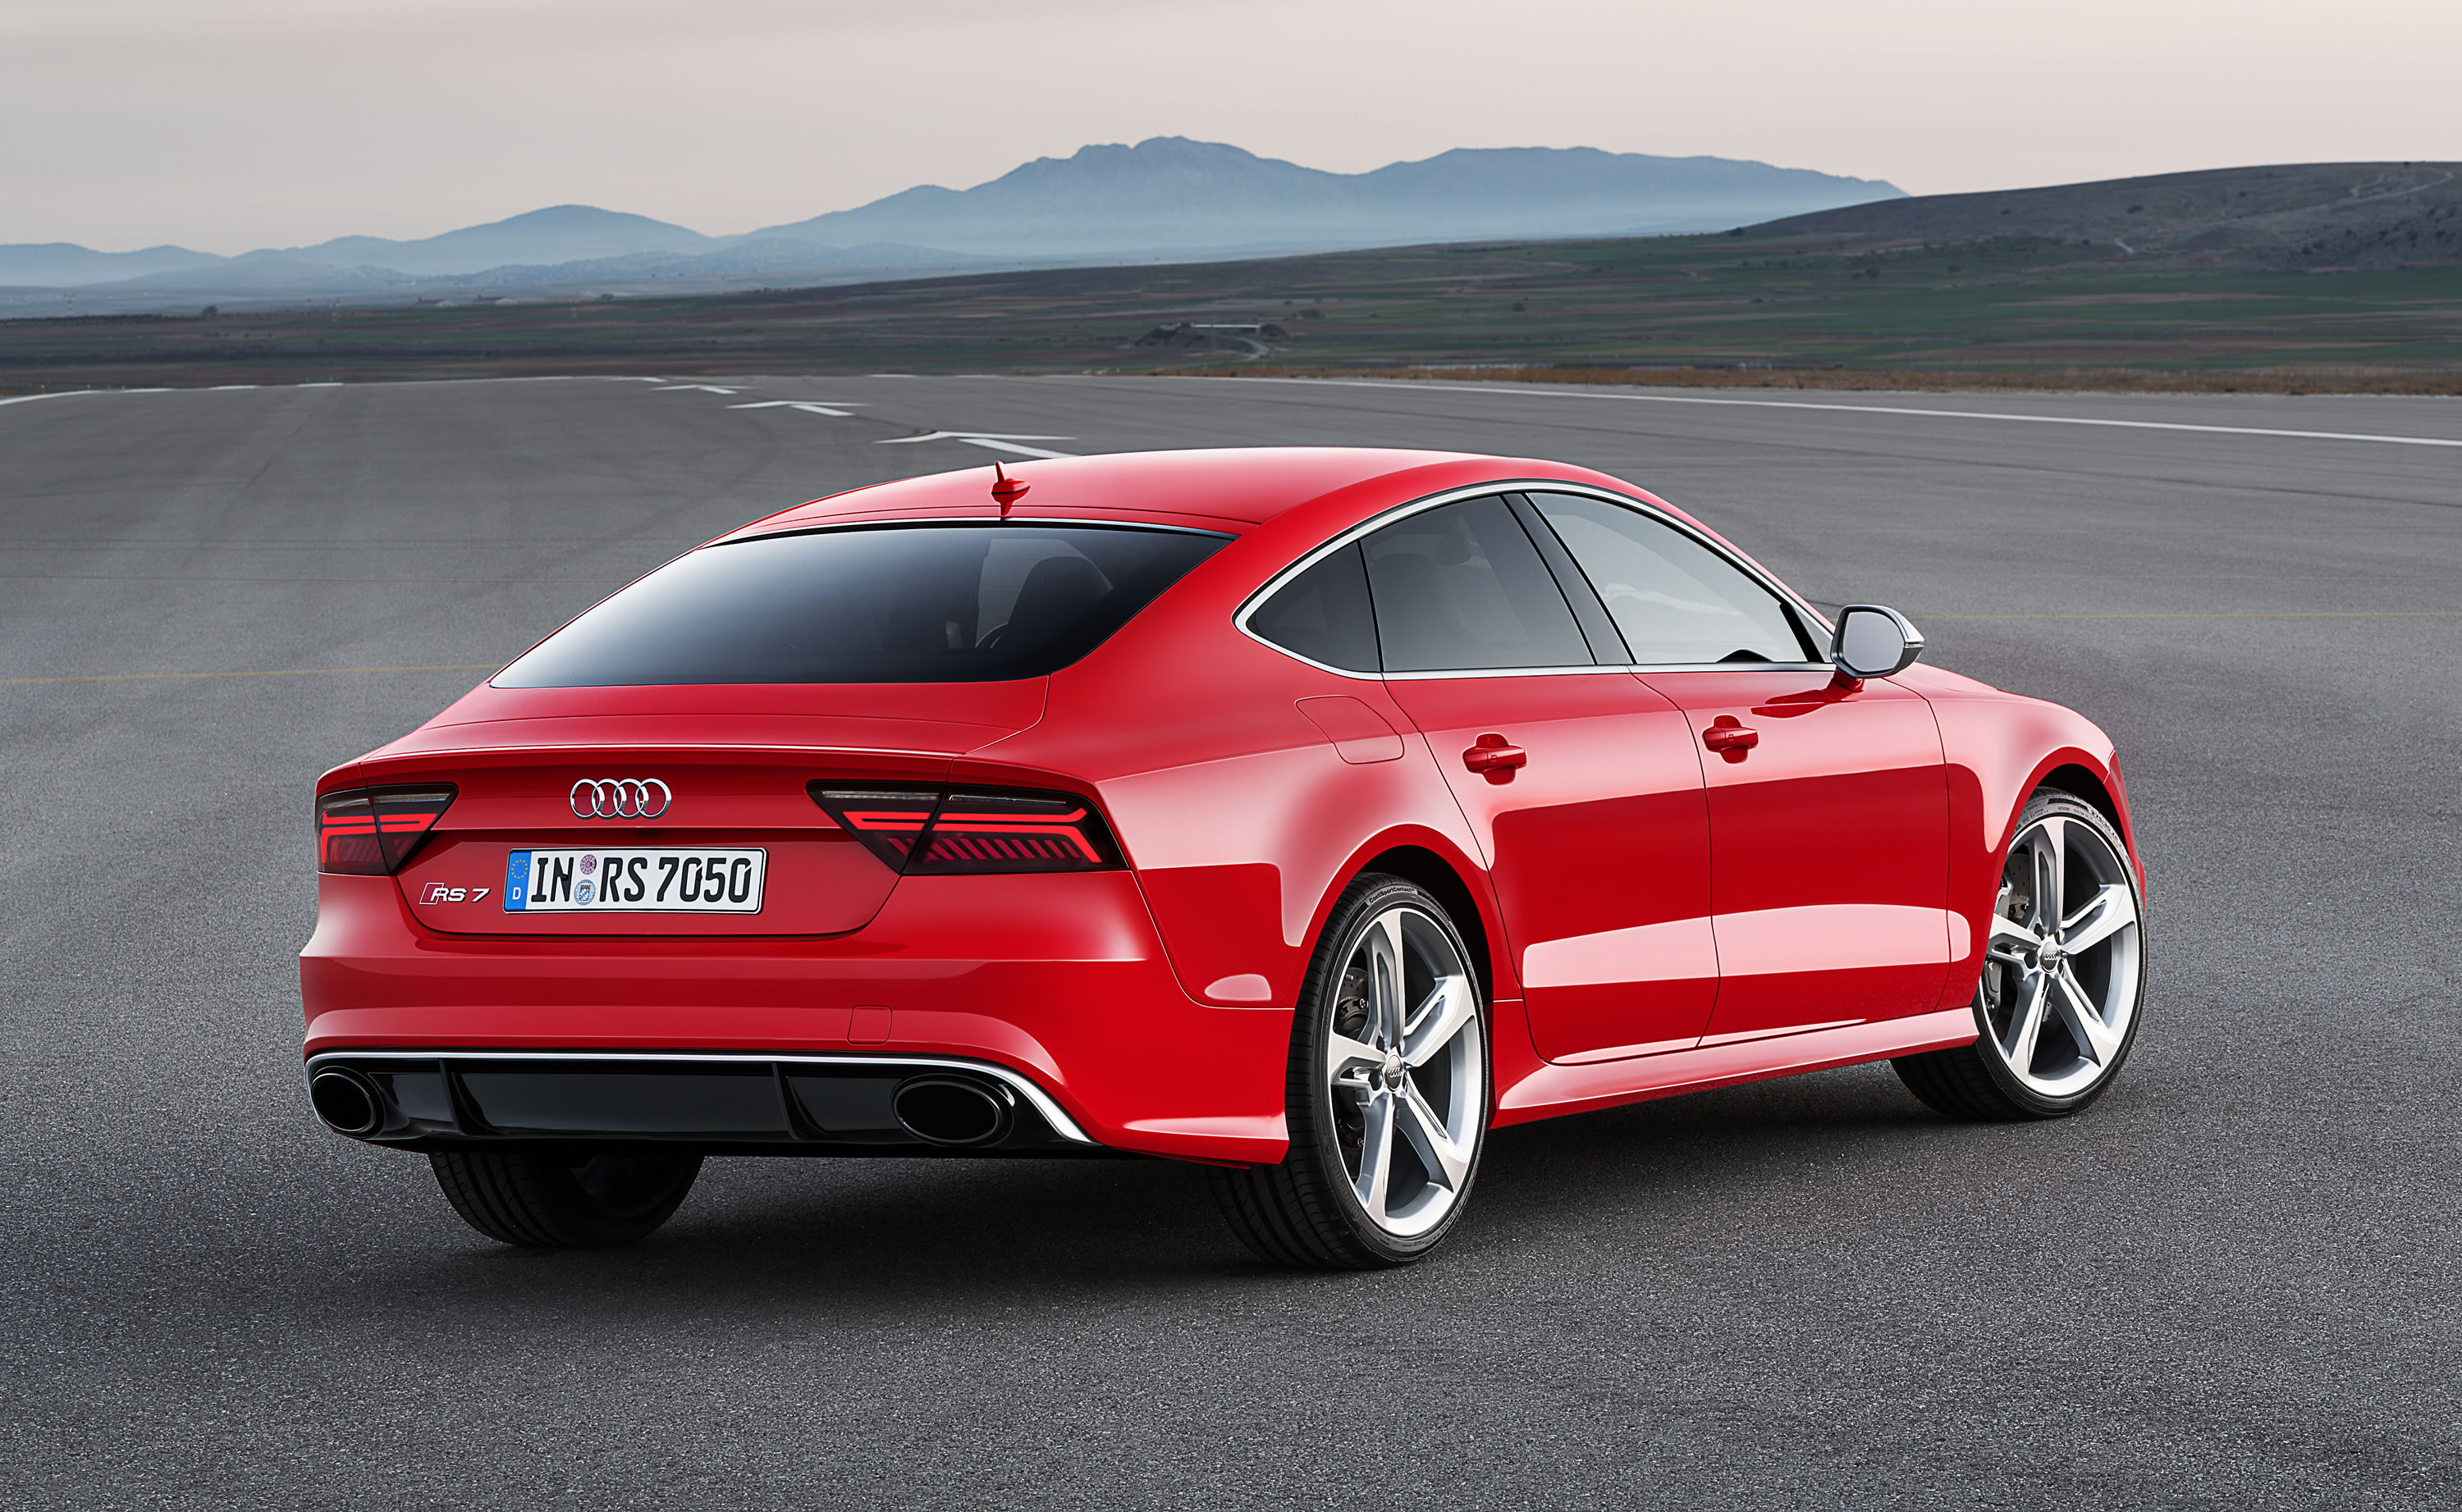 2016 Audi RS 7 Sportback Photos, Specs and Review - RS